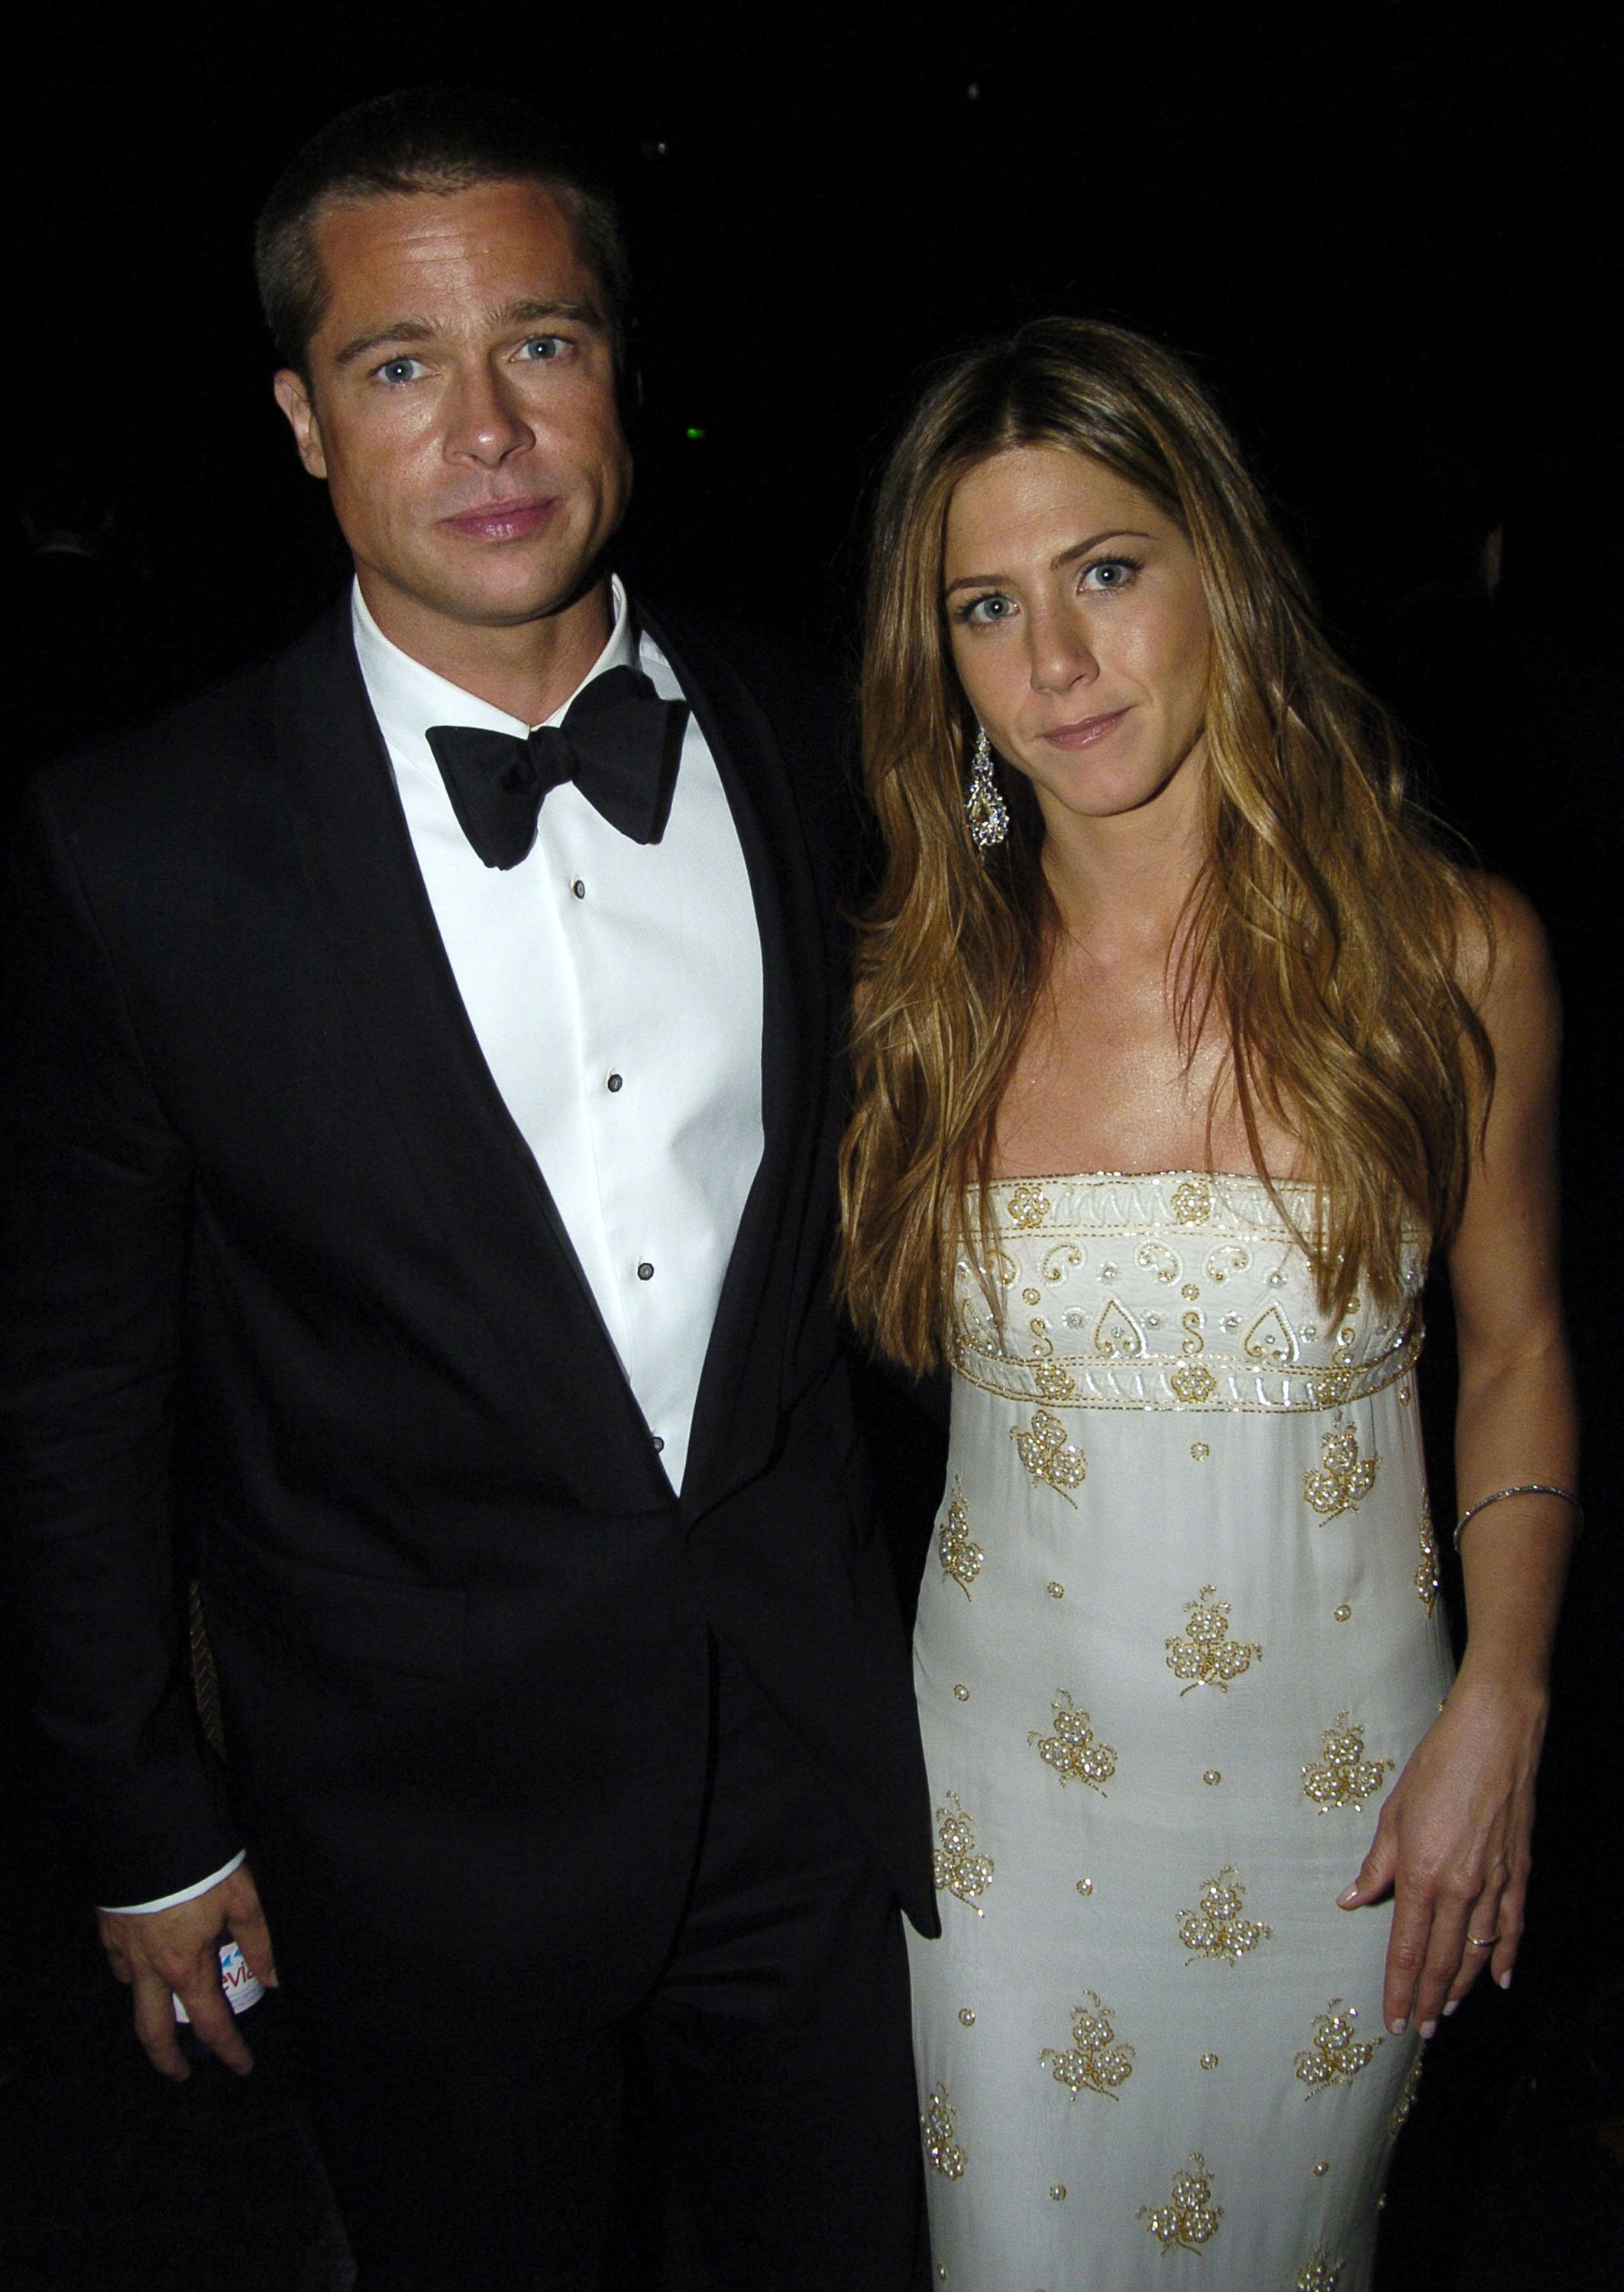 Brad Pitt and Jennifer Aniston attend the Primetime Emmy Awards in Los Angeles, California on September 19, 2004   Photo: Getty Images